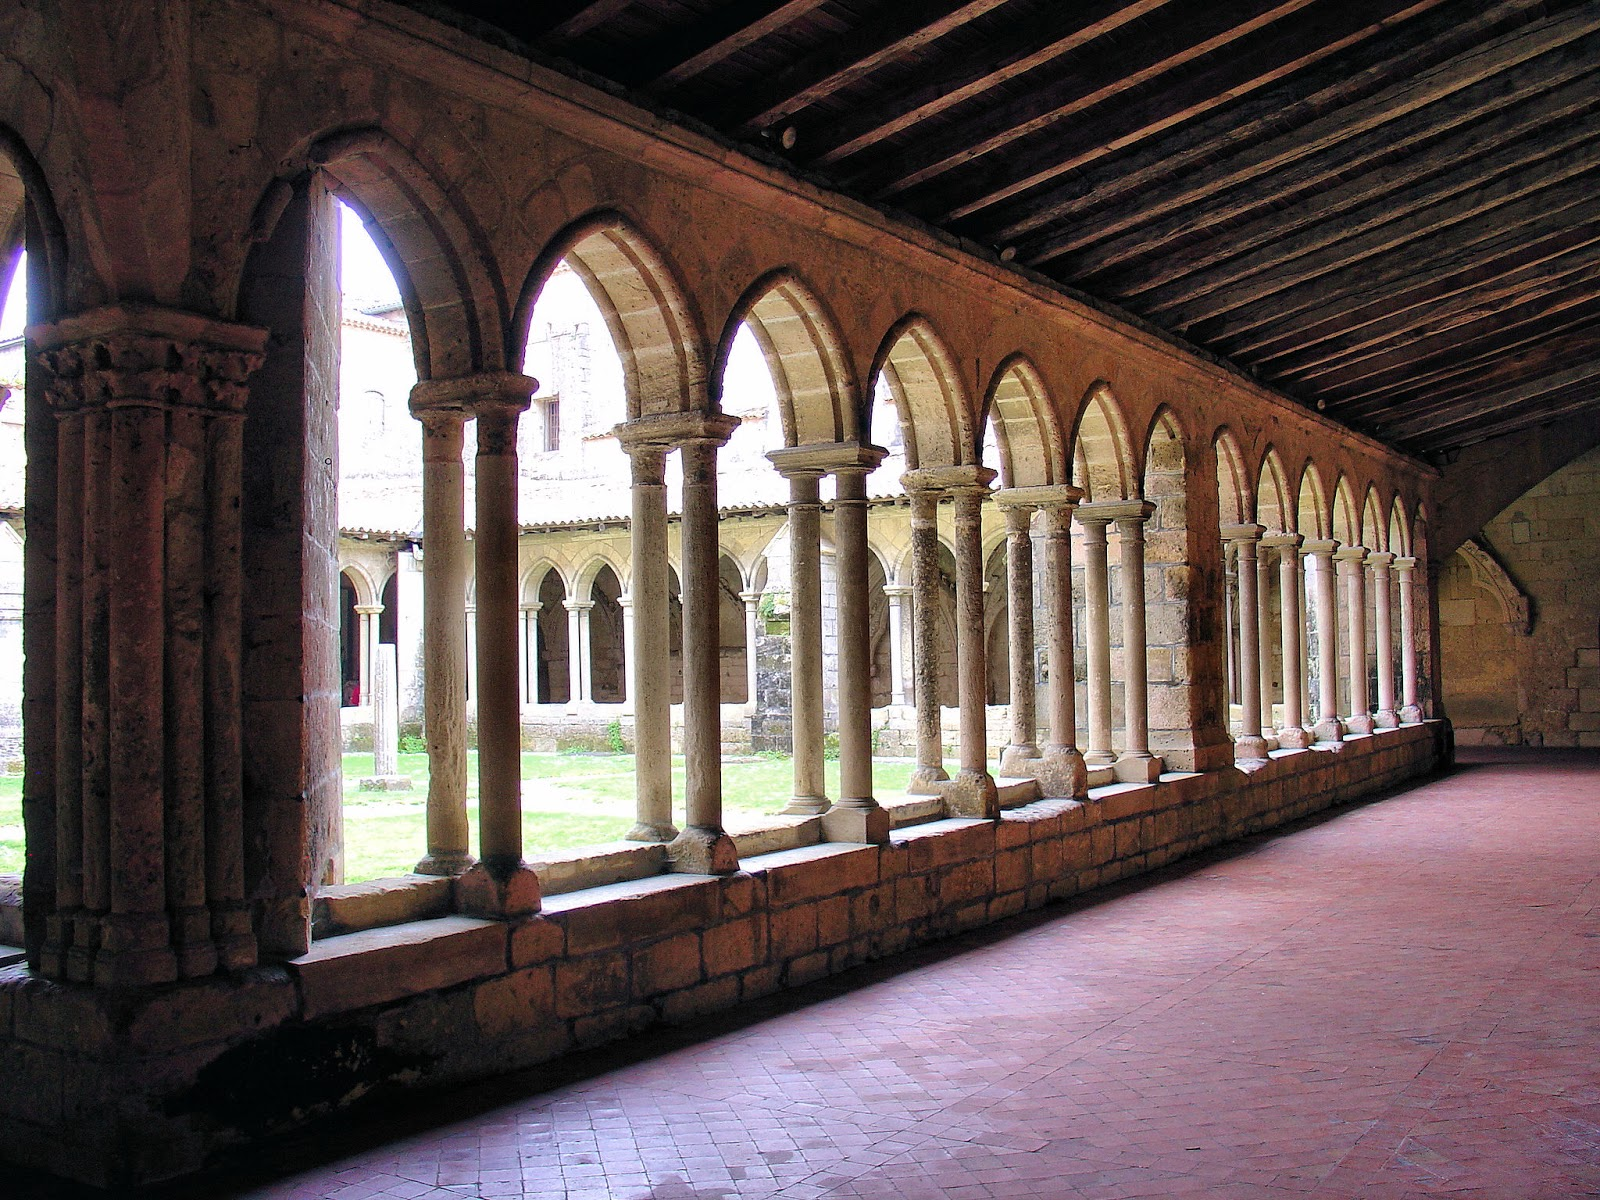 Looking out into the Collegiate Cloister in Saint-Émilion.